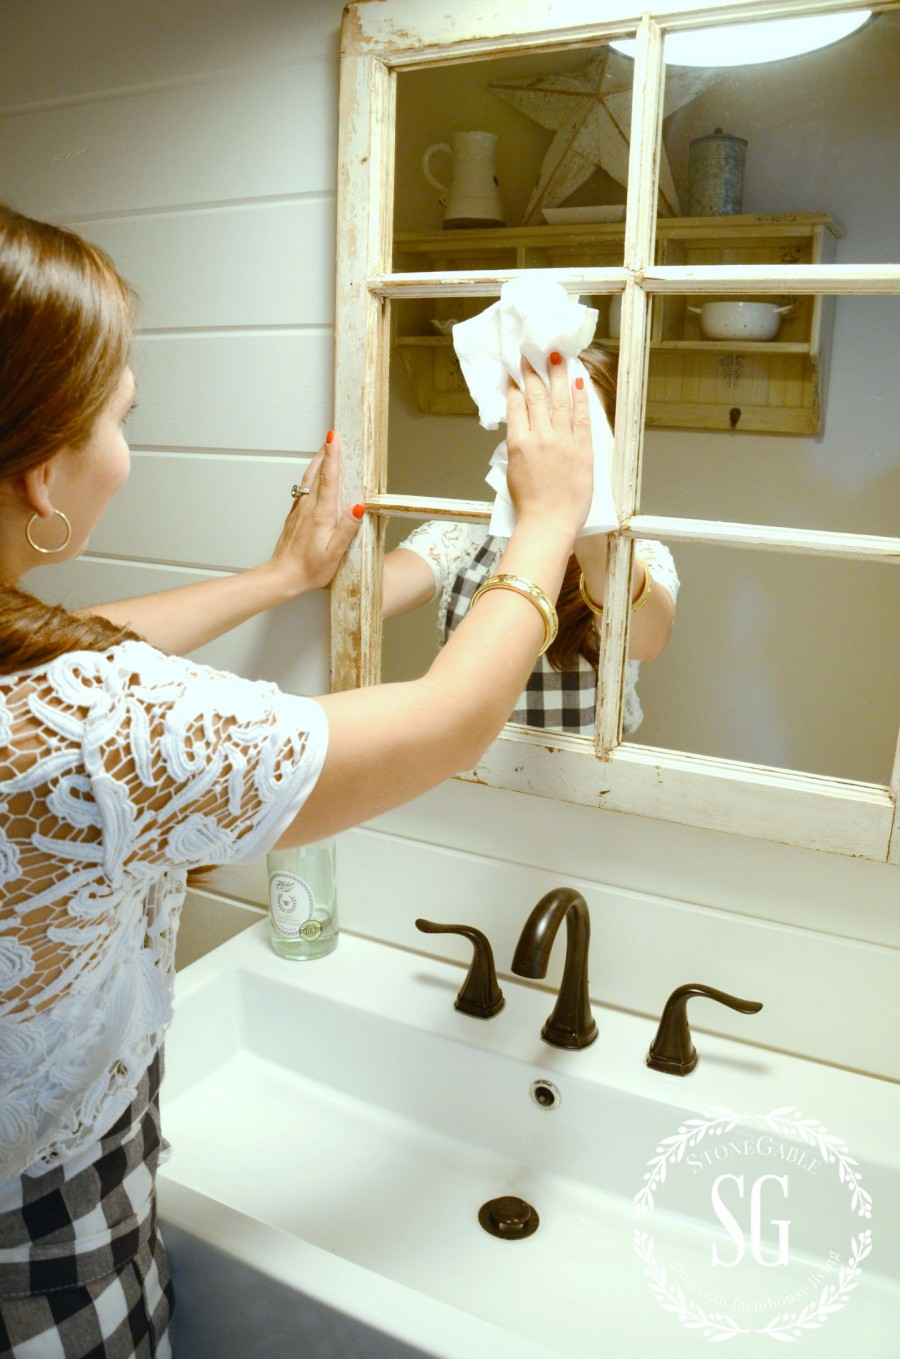 HOW TO CLEAN YOU HOME IN 30 MINUTES A DAY! cleaning the bathroom-stonegableblog.com